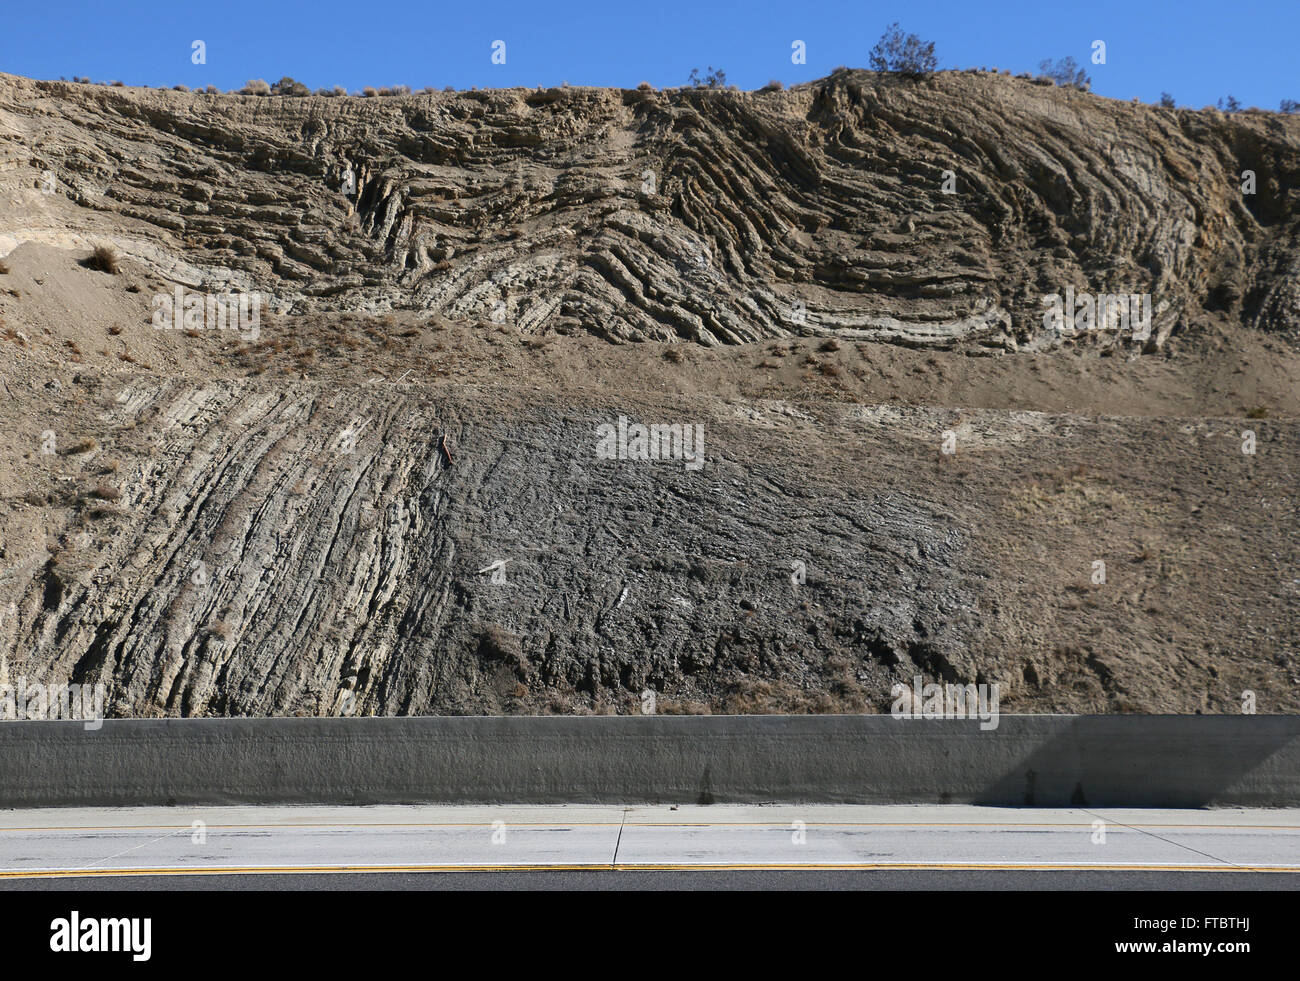 Deformed rock layers in road cut along San Andres fault County of Los Angeles - Stock Image